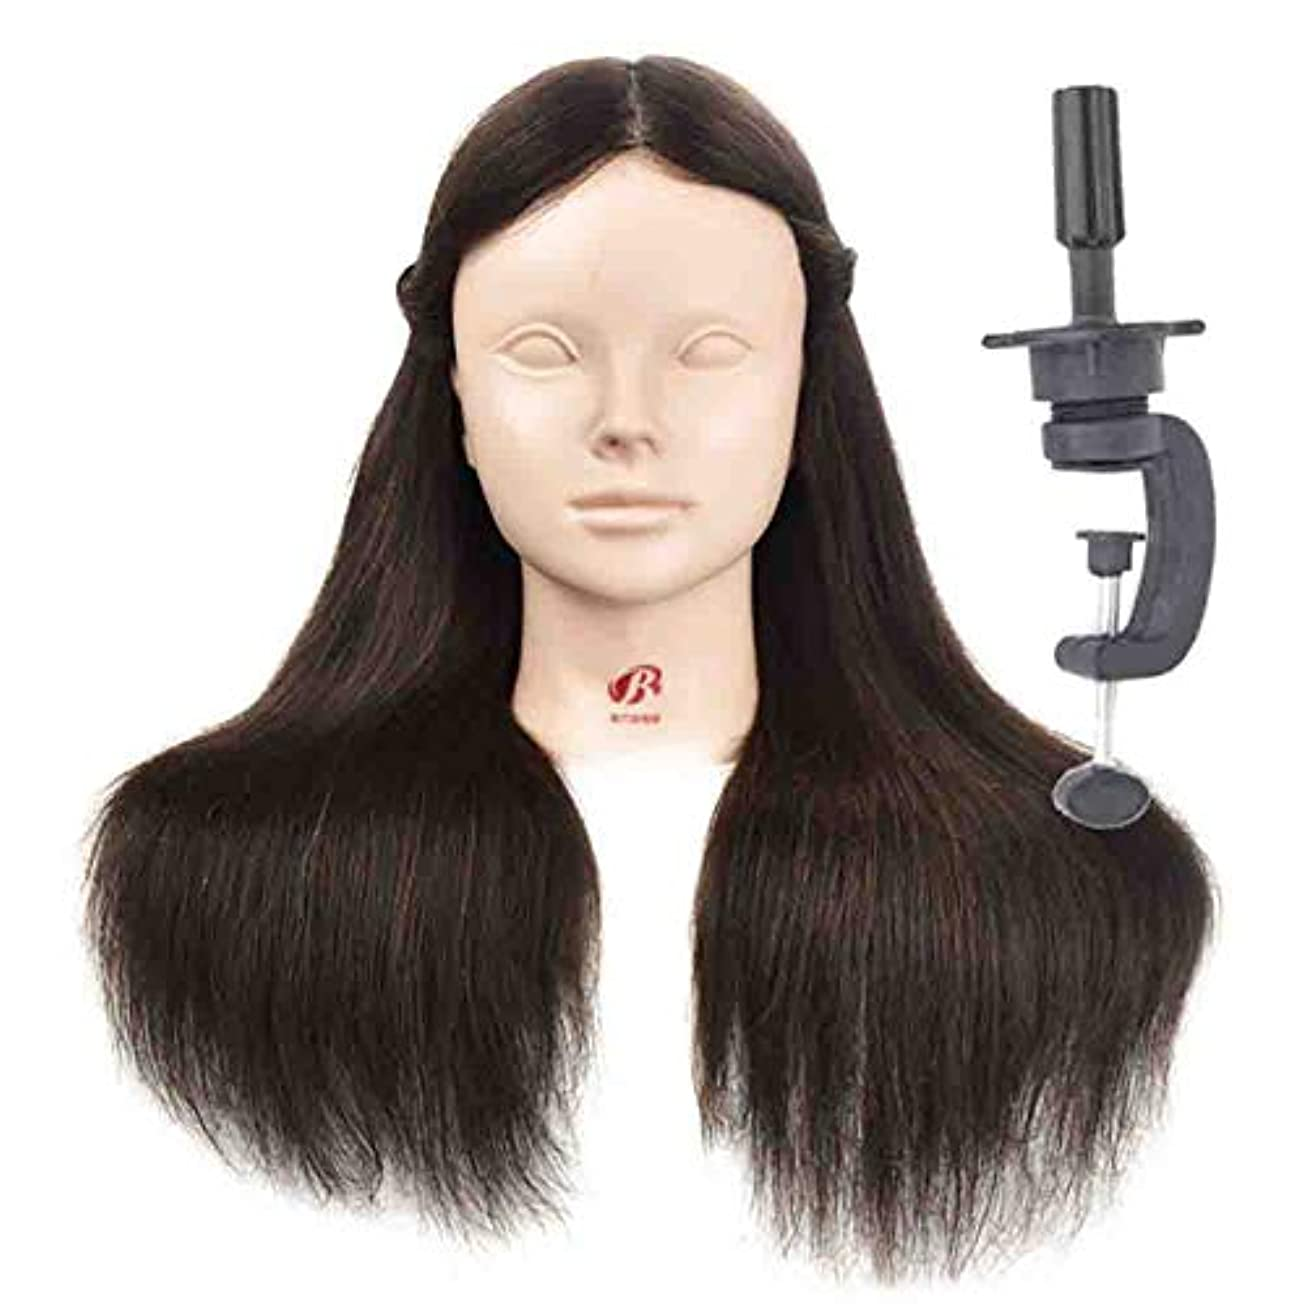 マイナス心臓彼女自身Makeup Modeling Learning Dummy Head Real Human Hair Practice Head Model Hair Salon Model Head Can be Hot Dyed